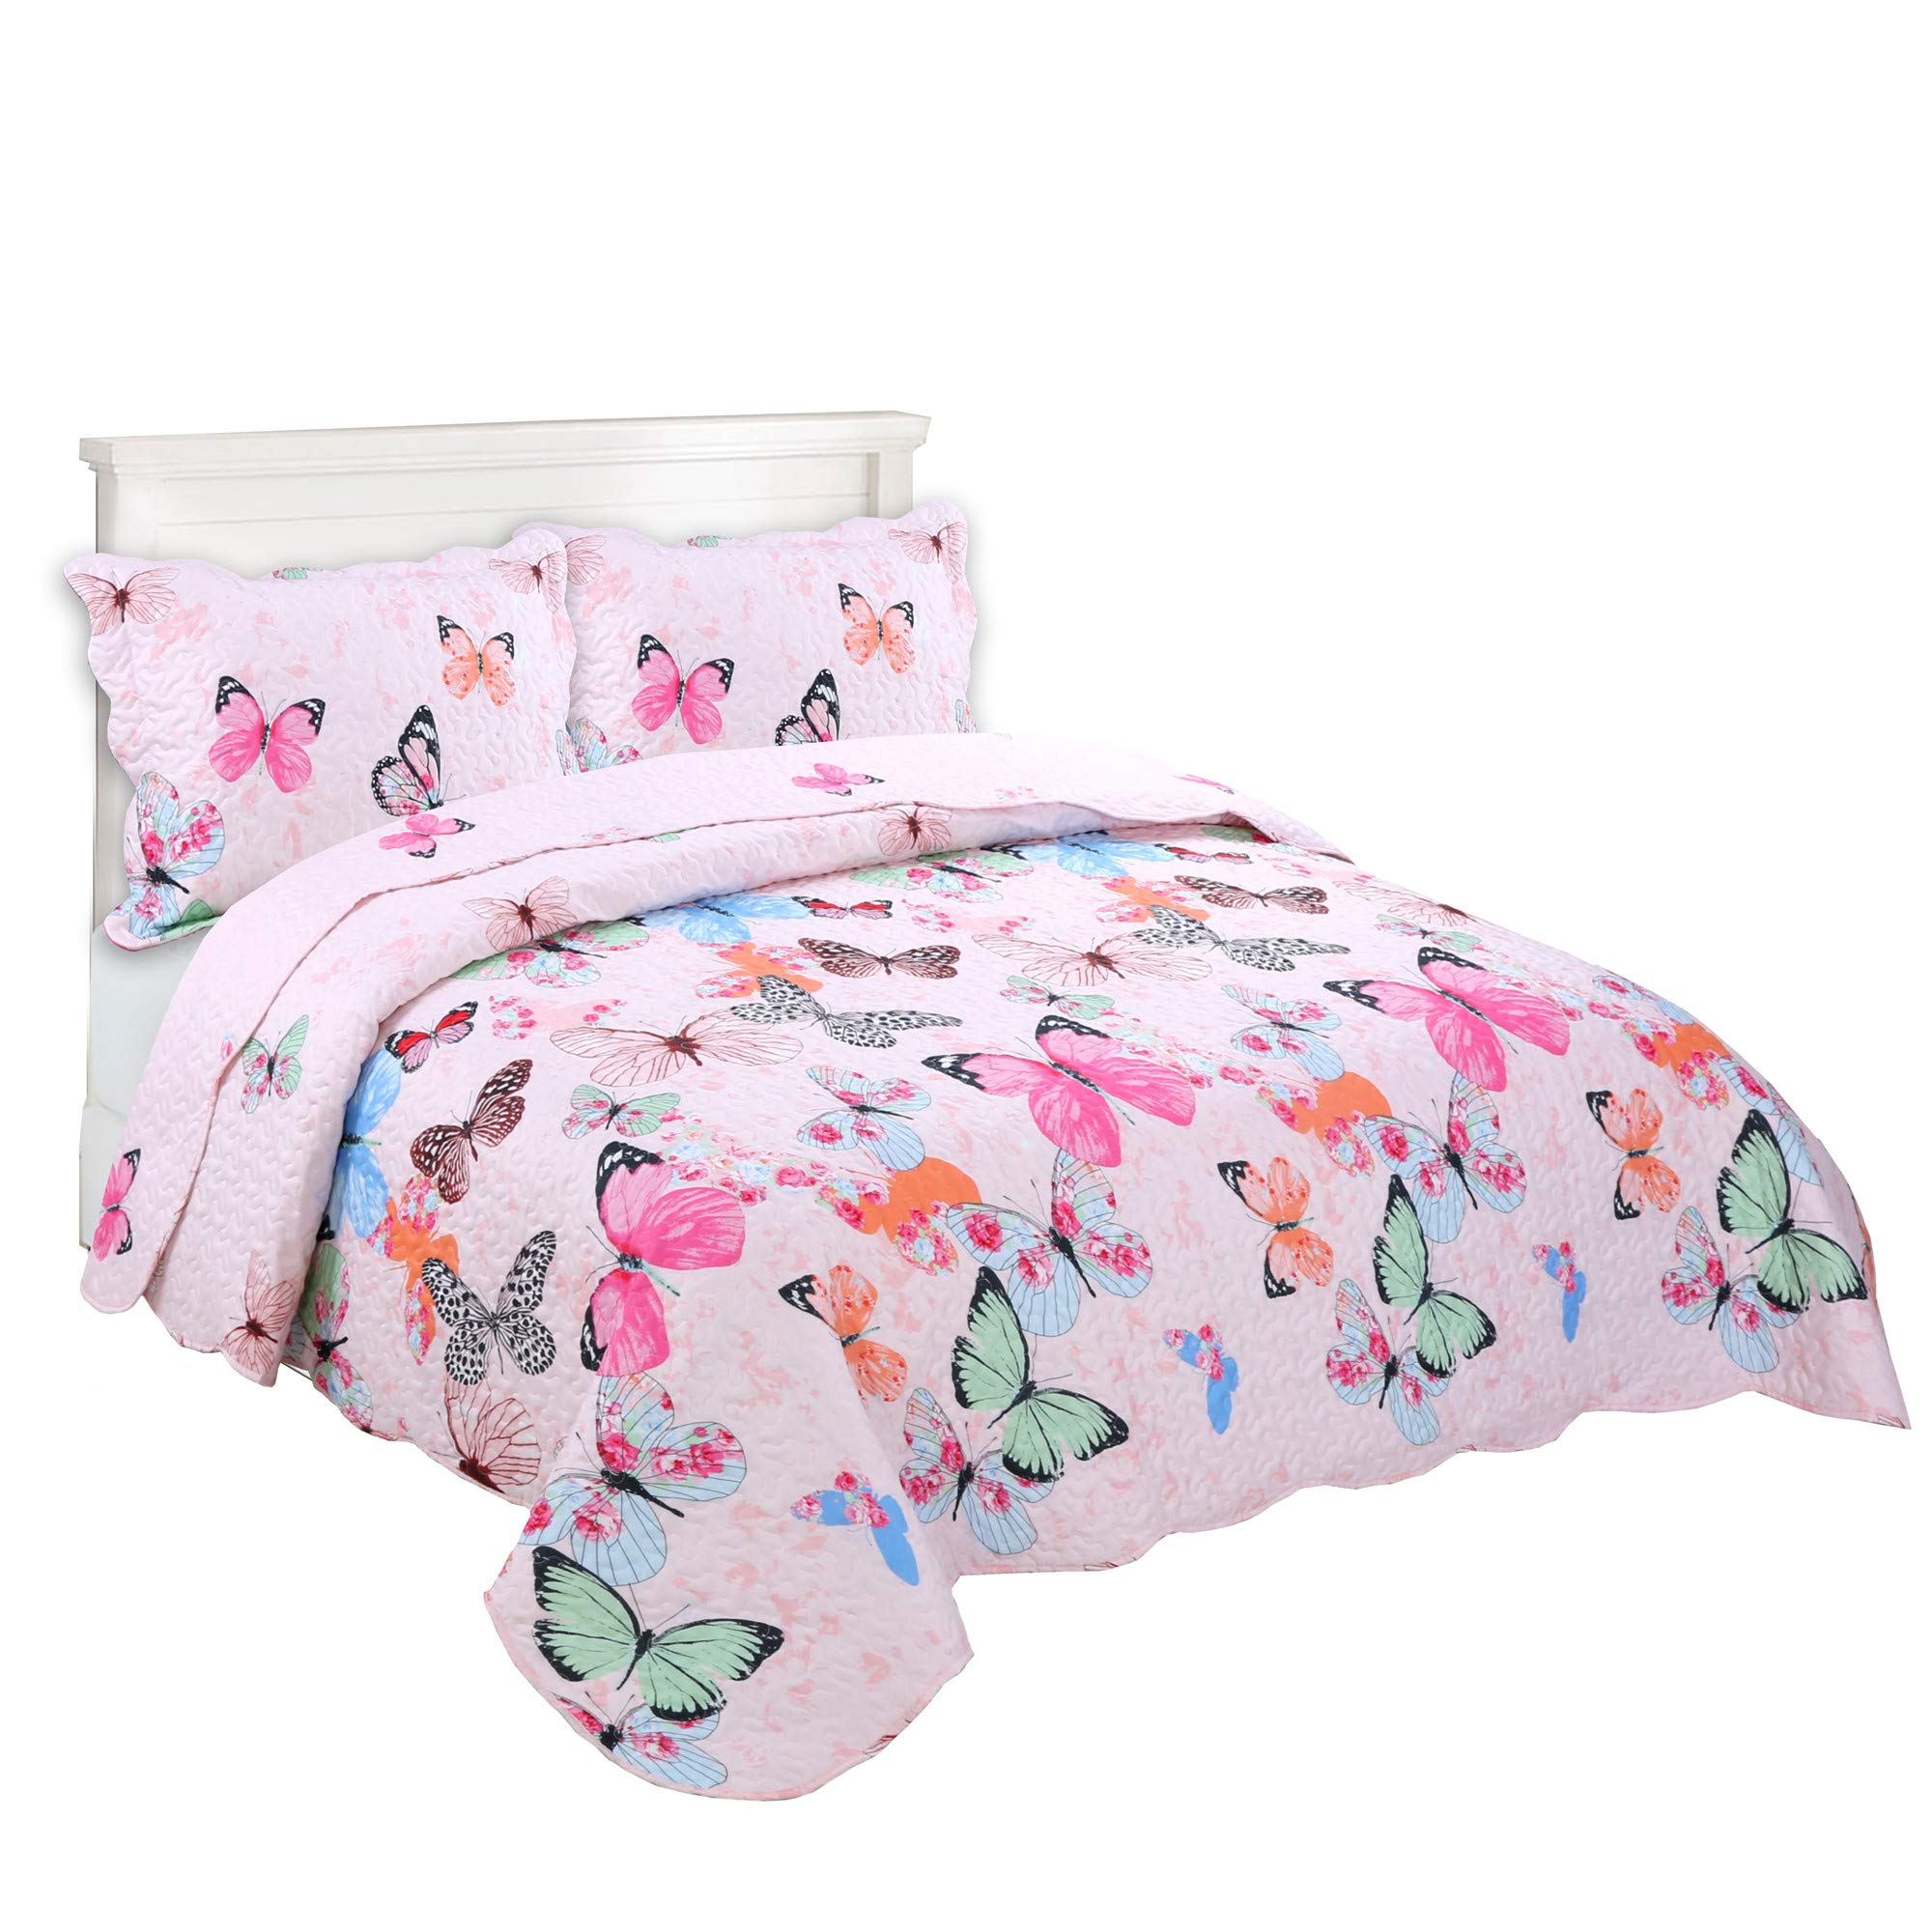 MarCielo 2 Piece Kids Bedspread Quilts Set Throw Blanket for Teens Boys Girls Bed Printed Bedding Coverlet A72 Butterfly (Full/Queen(98''x90''))